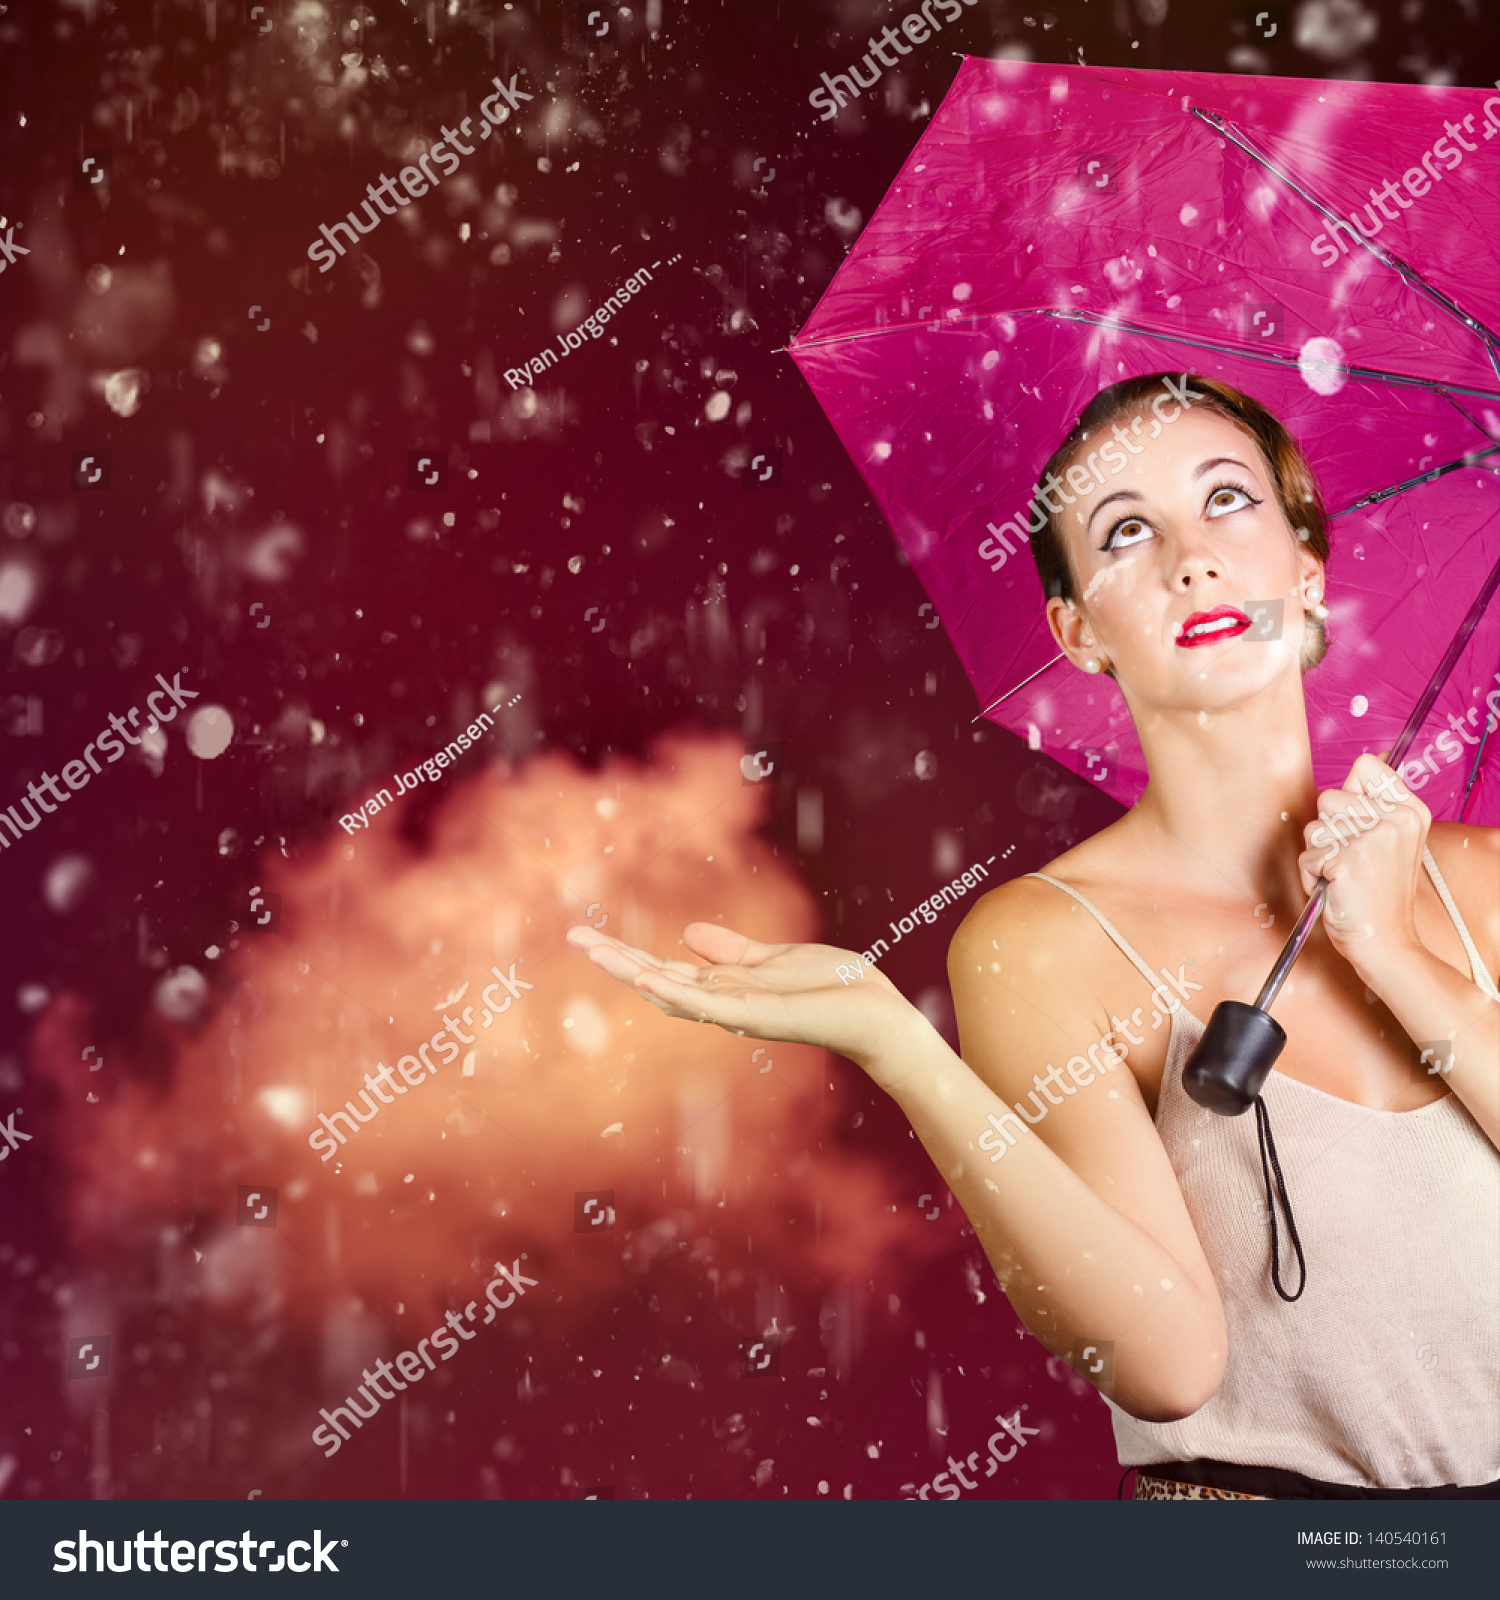 of falling rain during the humidity of summer. Retro fashion storm #AE1D66